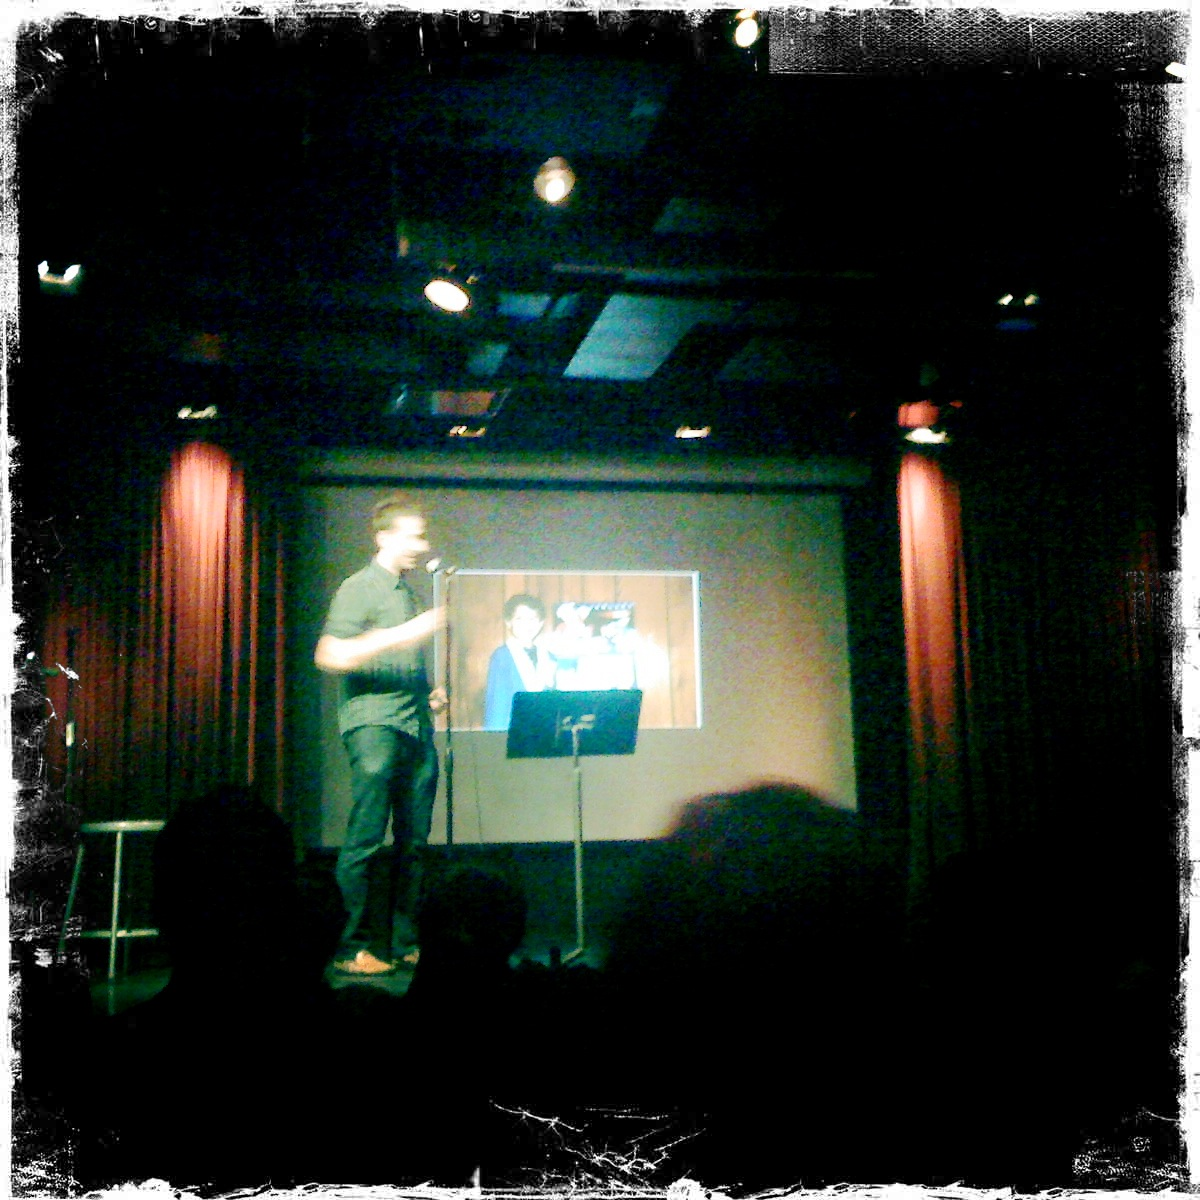 Steve performing at  getmortified.com  last night. It was awesome.